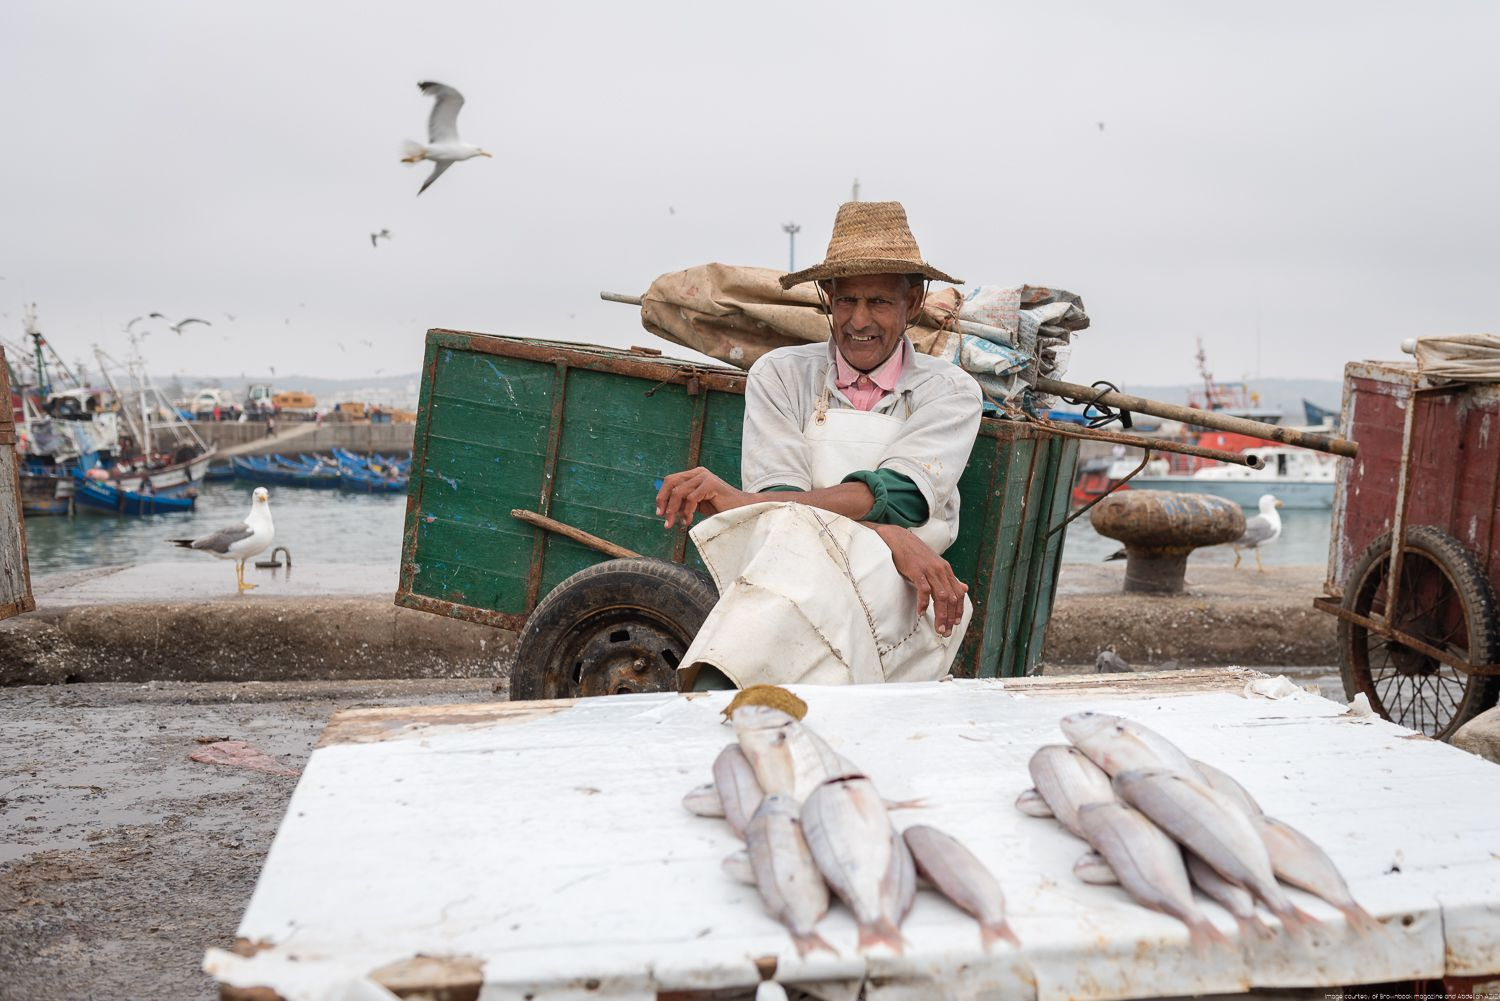 Fish seller in Essaouira port